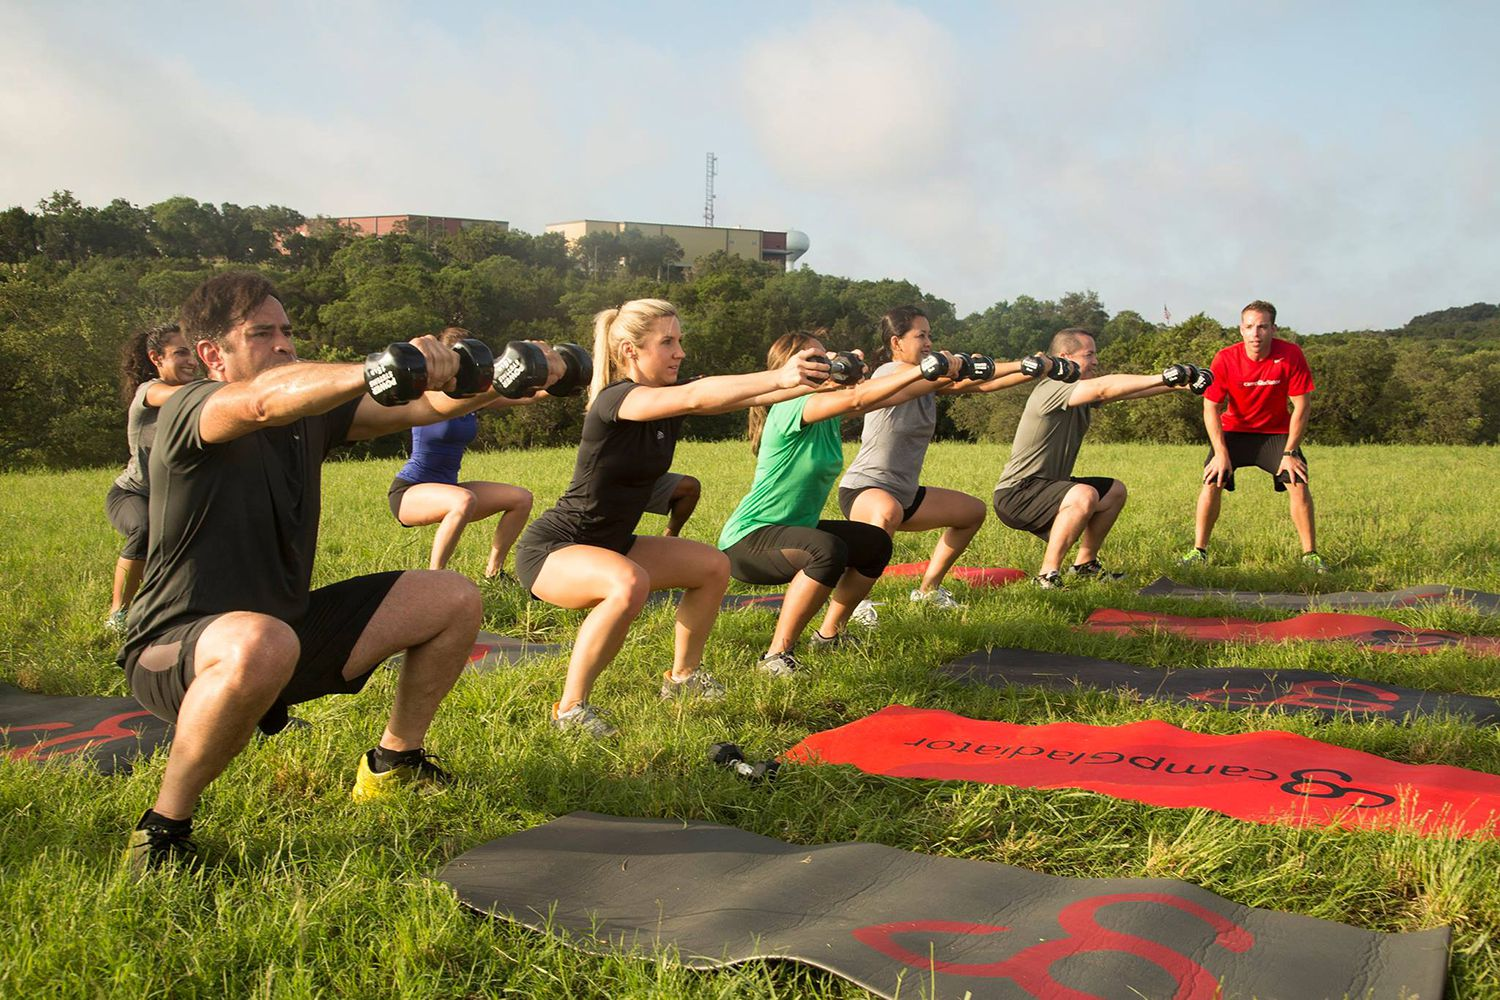 Camp Gladiator Reviews Outdoor Boot Camp Workout